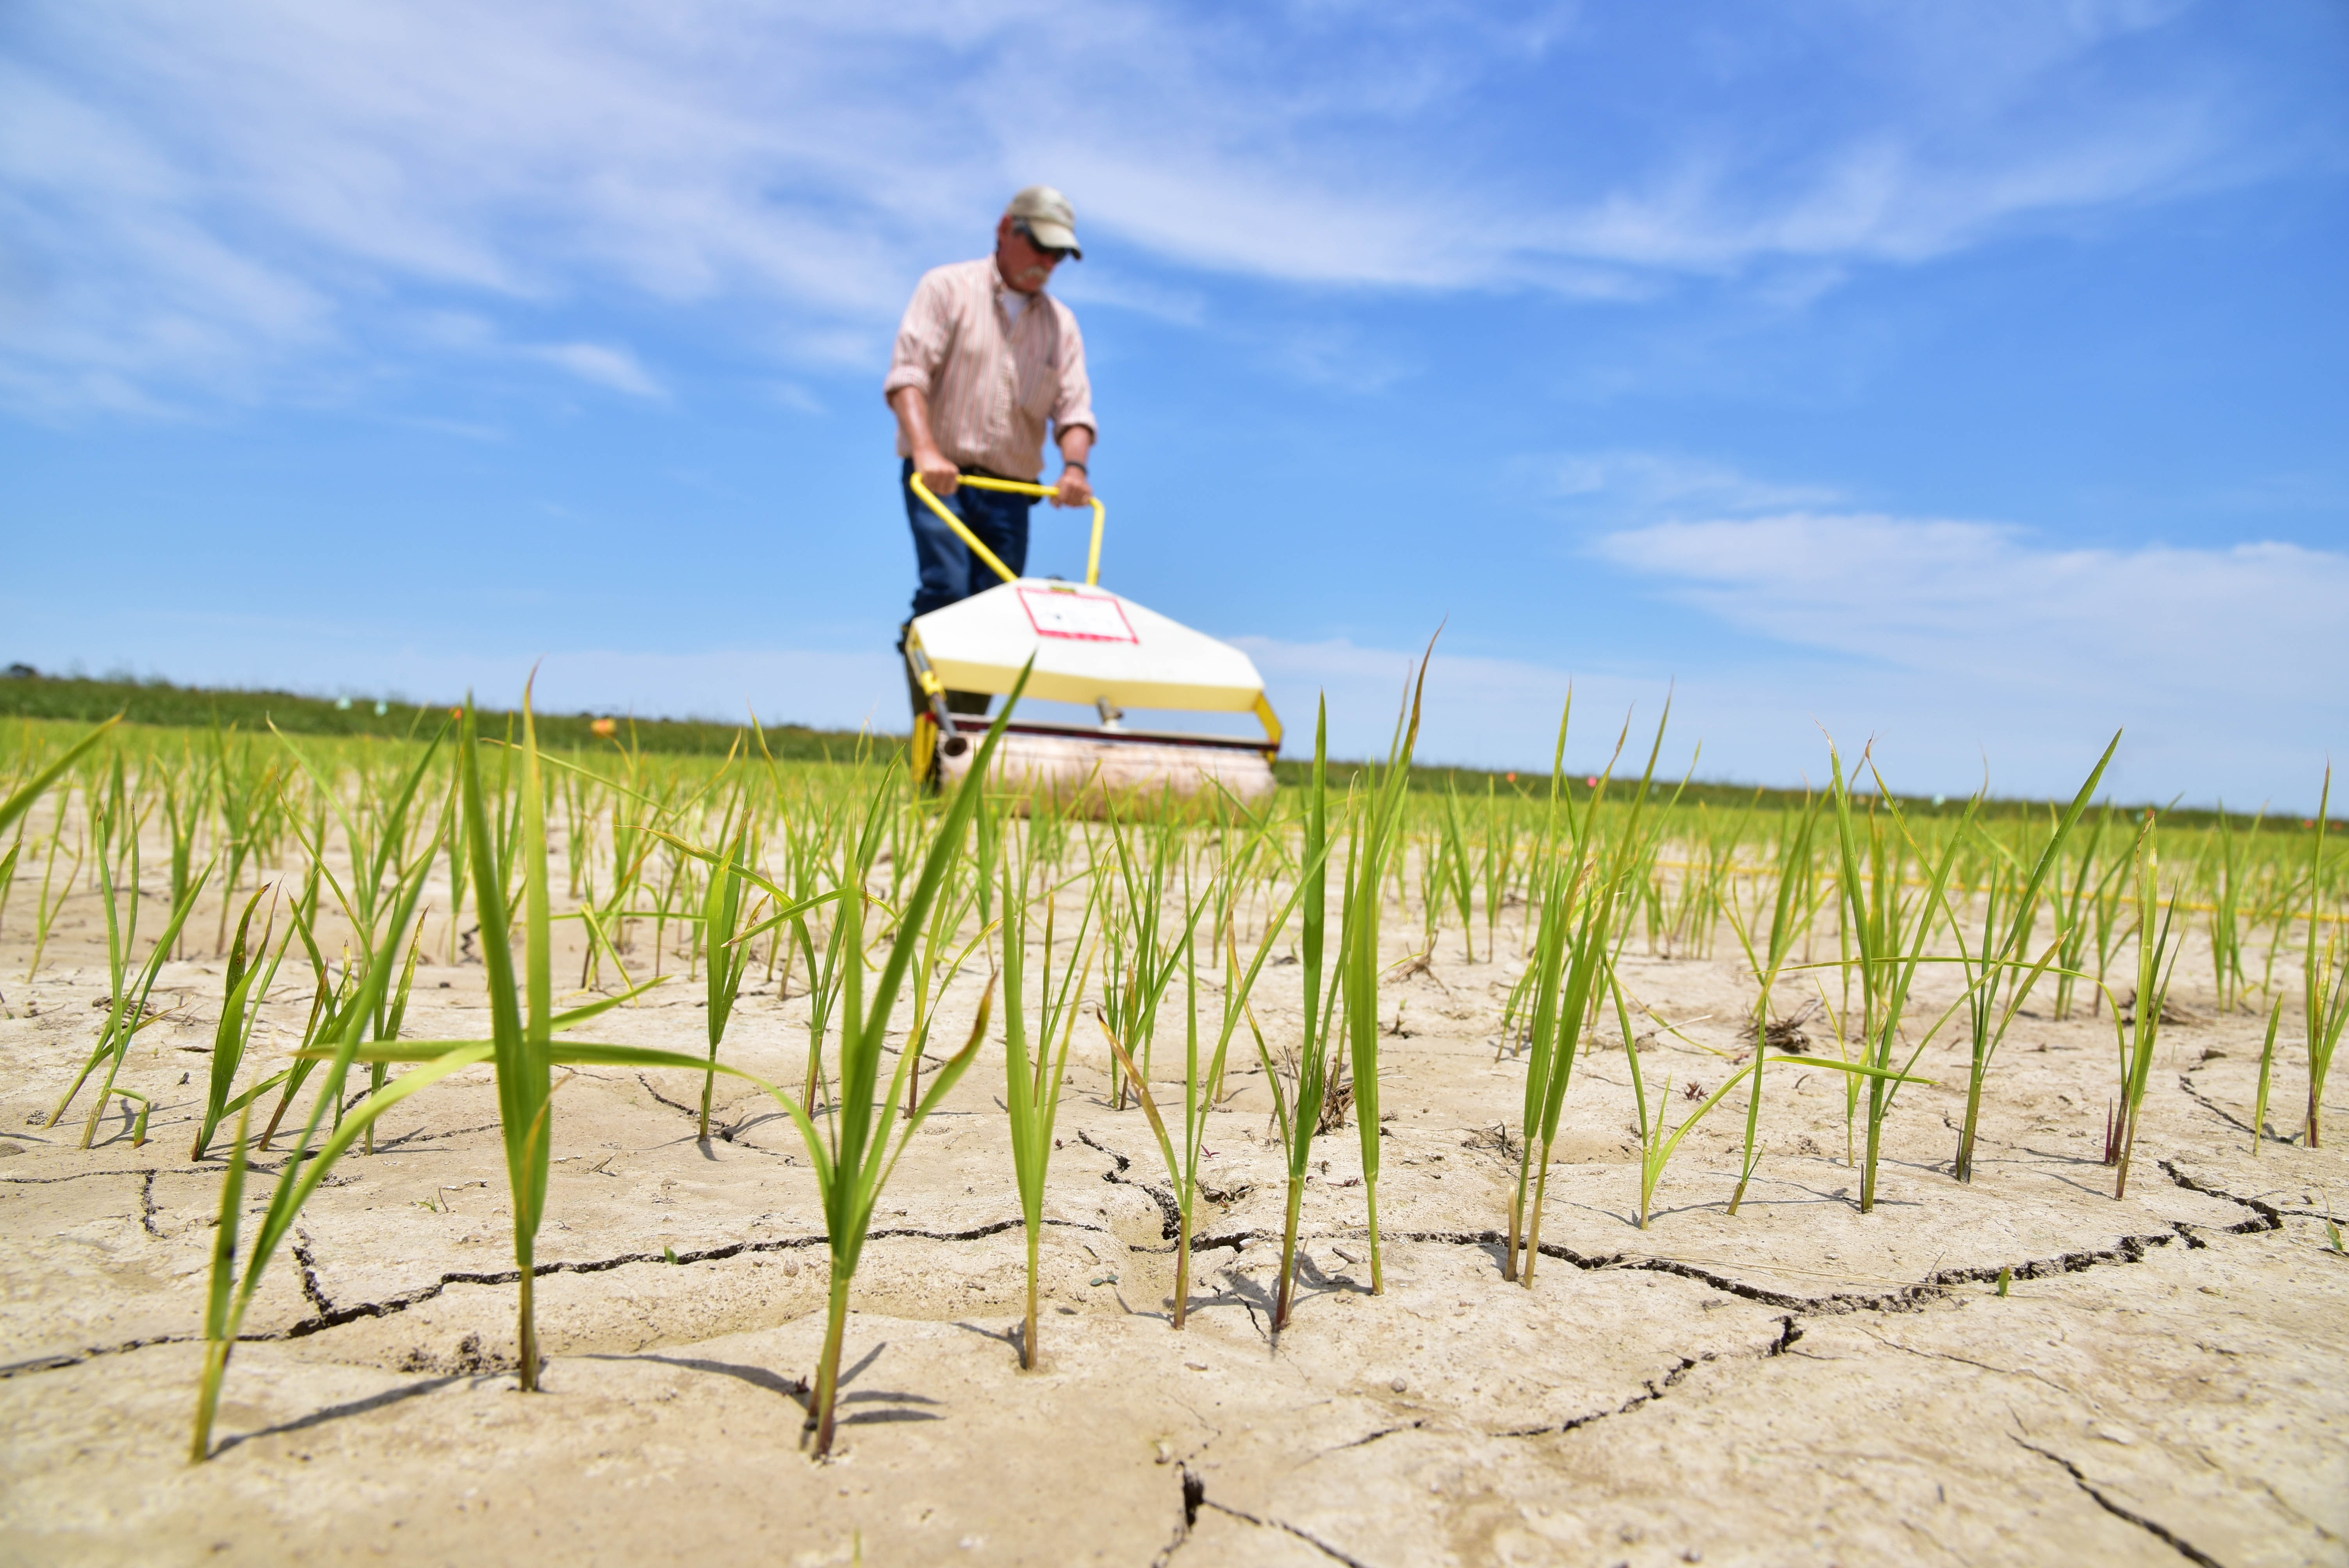 Cool weather delays spring crops